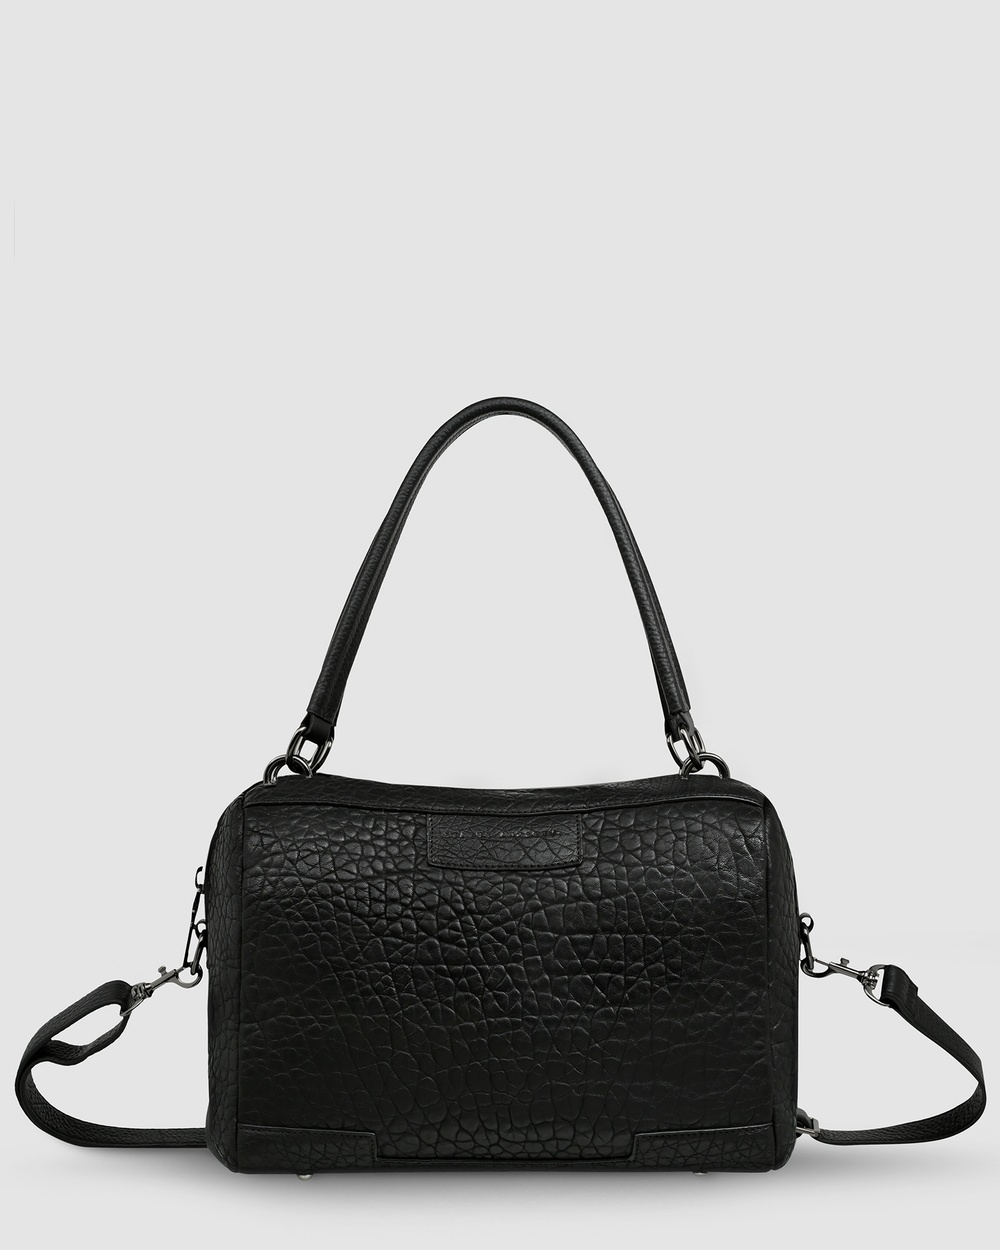 Status Anxiety Don't Ask Bag Satchels Black Bubble Leather bags Australia